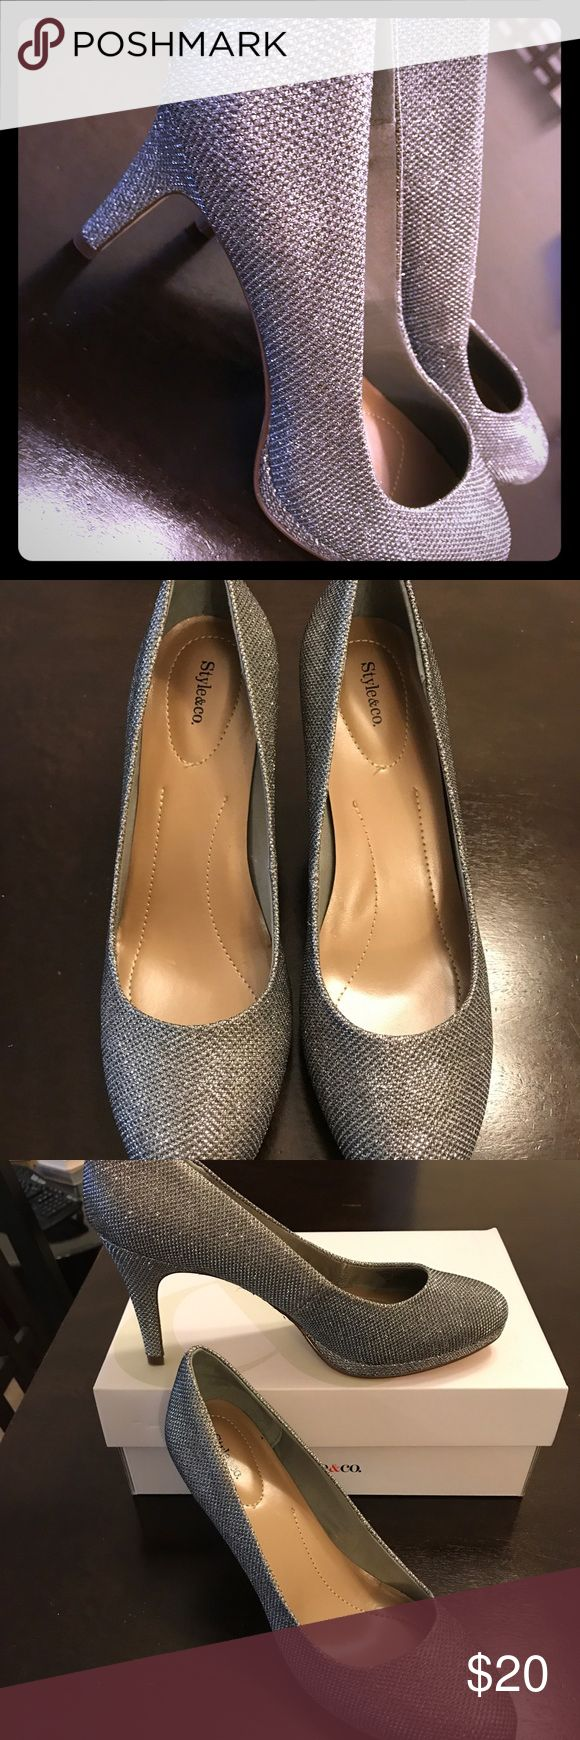 BRAND NEW silver sparkly heels BRAND NEW silver sparkly high heeled shoes size 8 in box. Shoes Heels